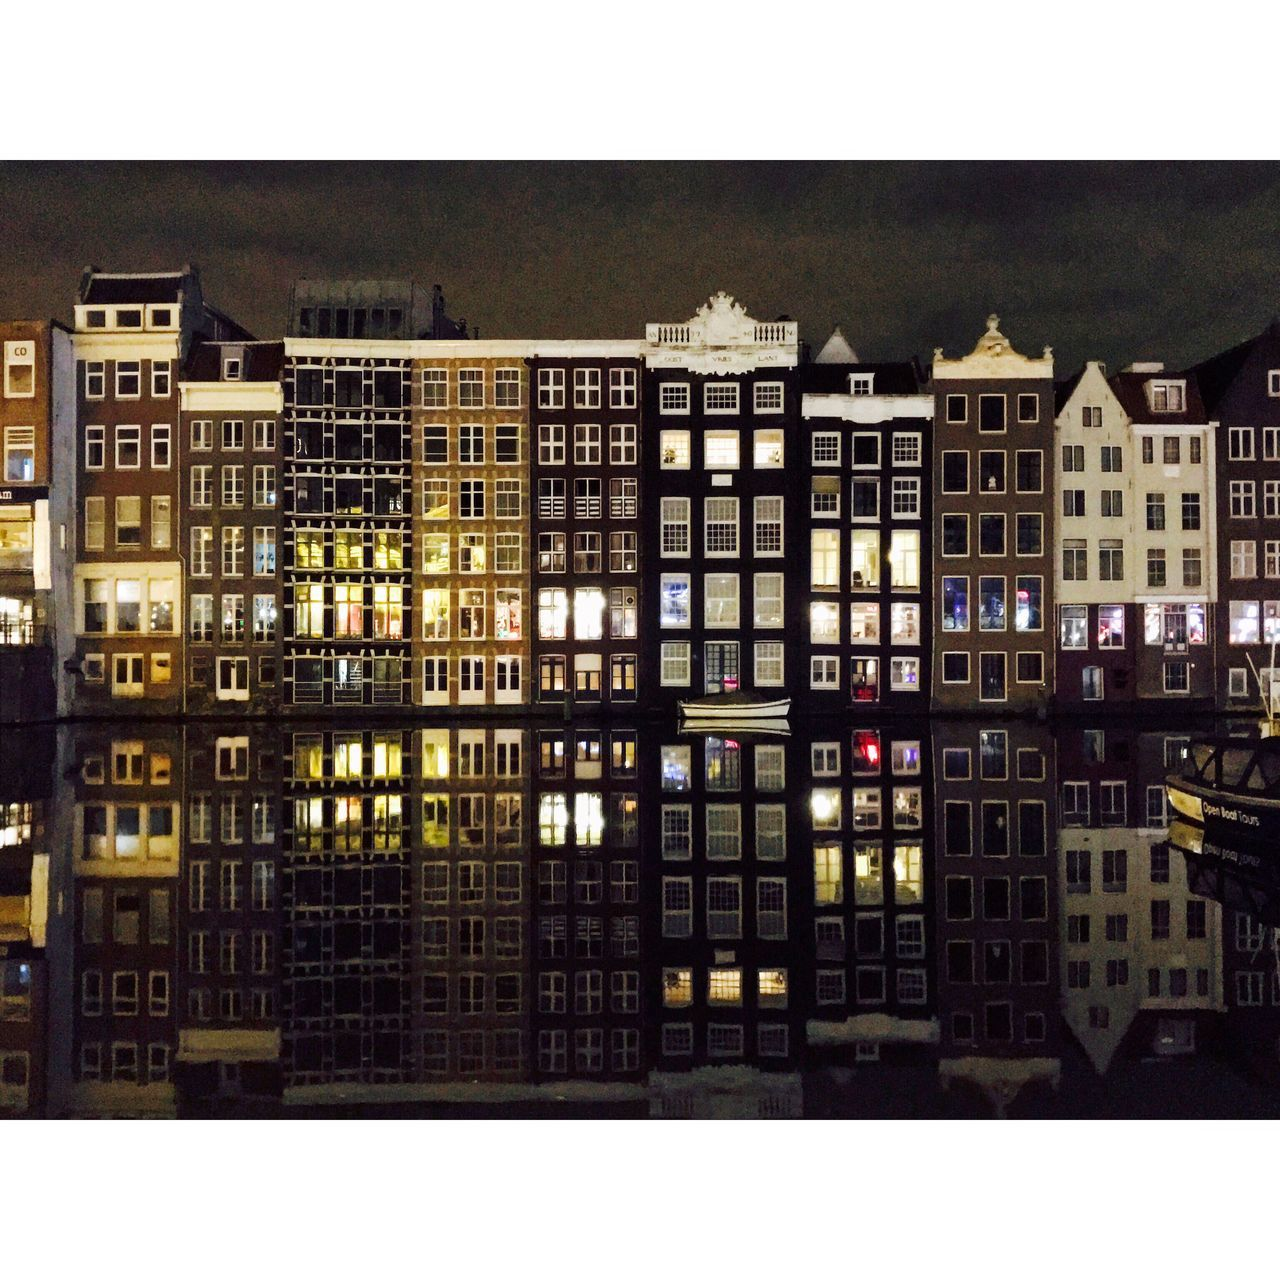 Amsterdam Architecture Building Exterior Built Structure No People Outdoors Illuminated Night City Light And Reflection Photoshoot Photos Pic First Eyeem Photo Picoftheday Photo Travel Destinations Famous Place Tourism City Life Architecture Canal Waterfront Holanda Netherlands